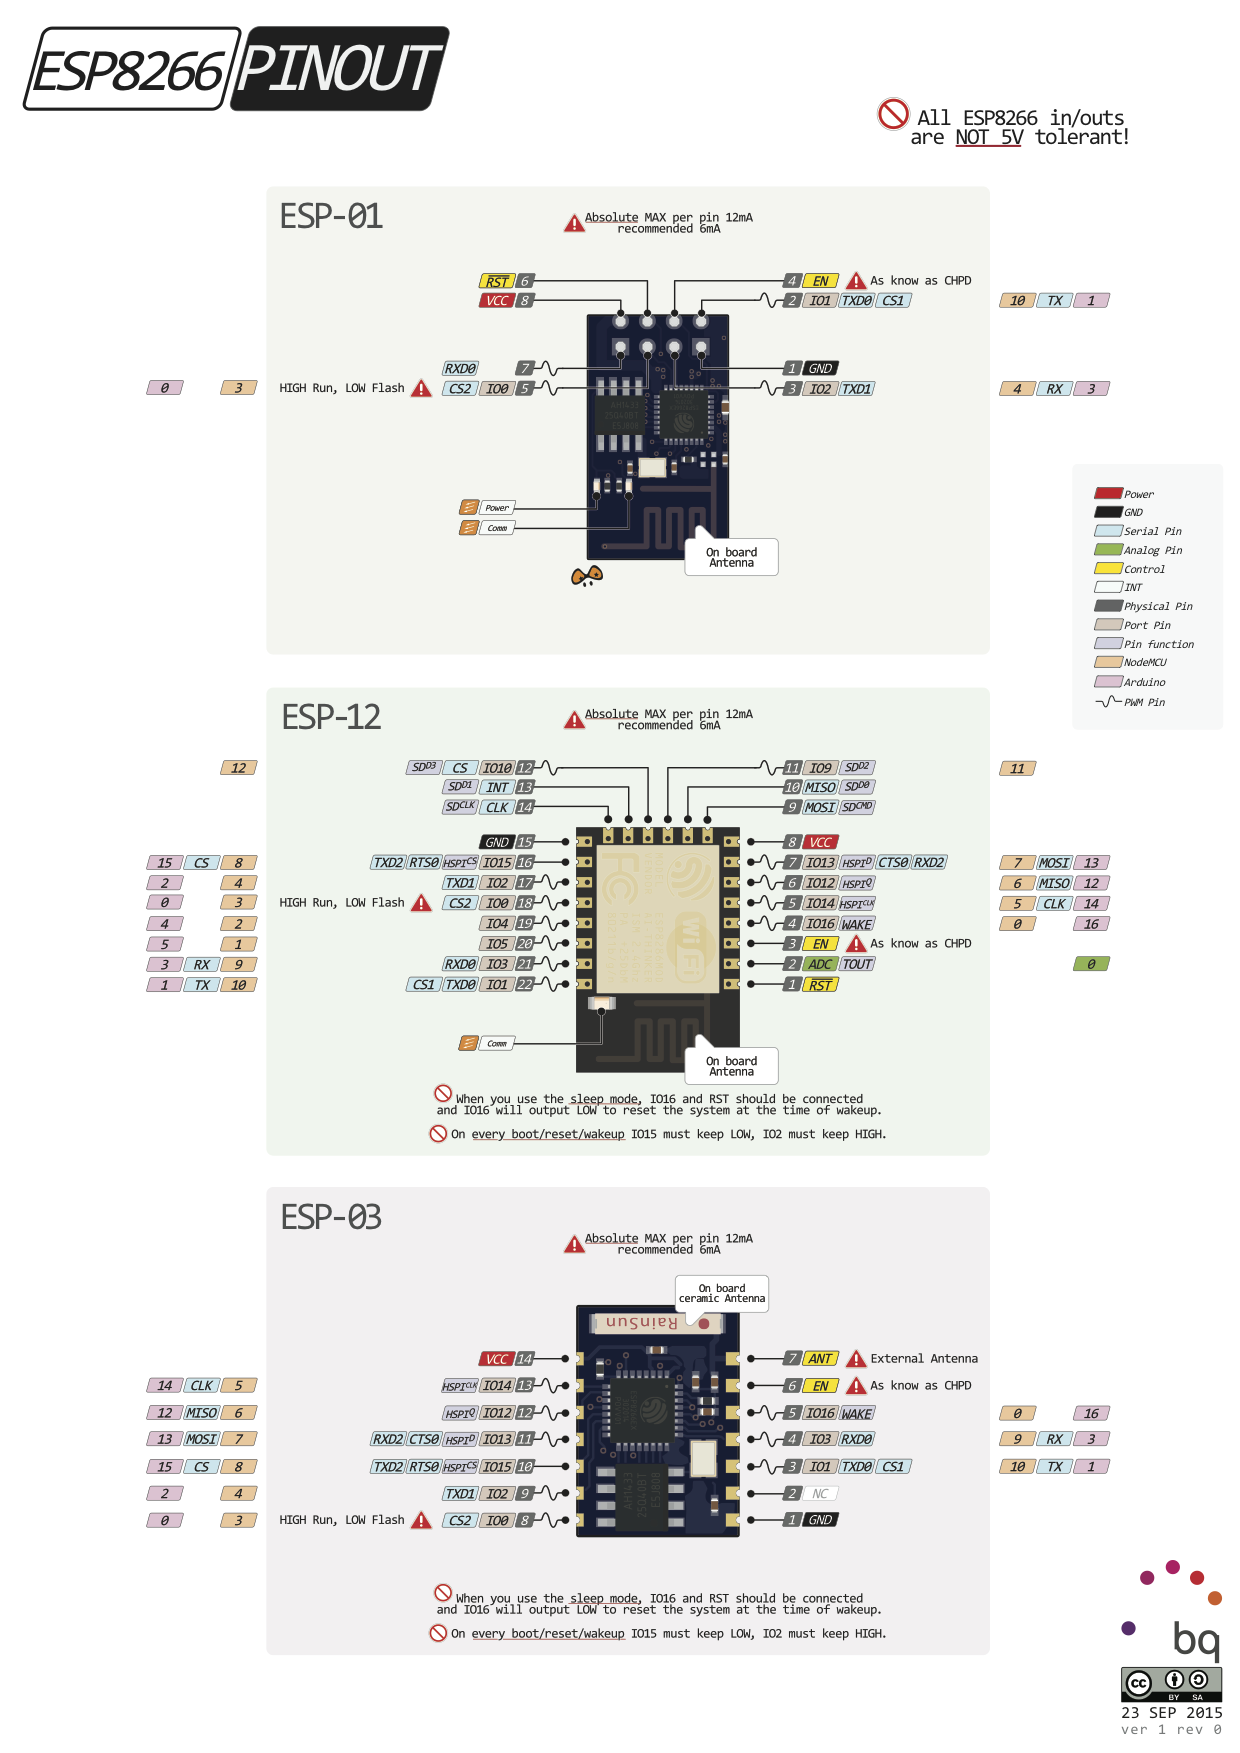 The ESP01, ESP12 and ESP03 are featured on the new pinout